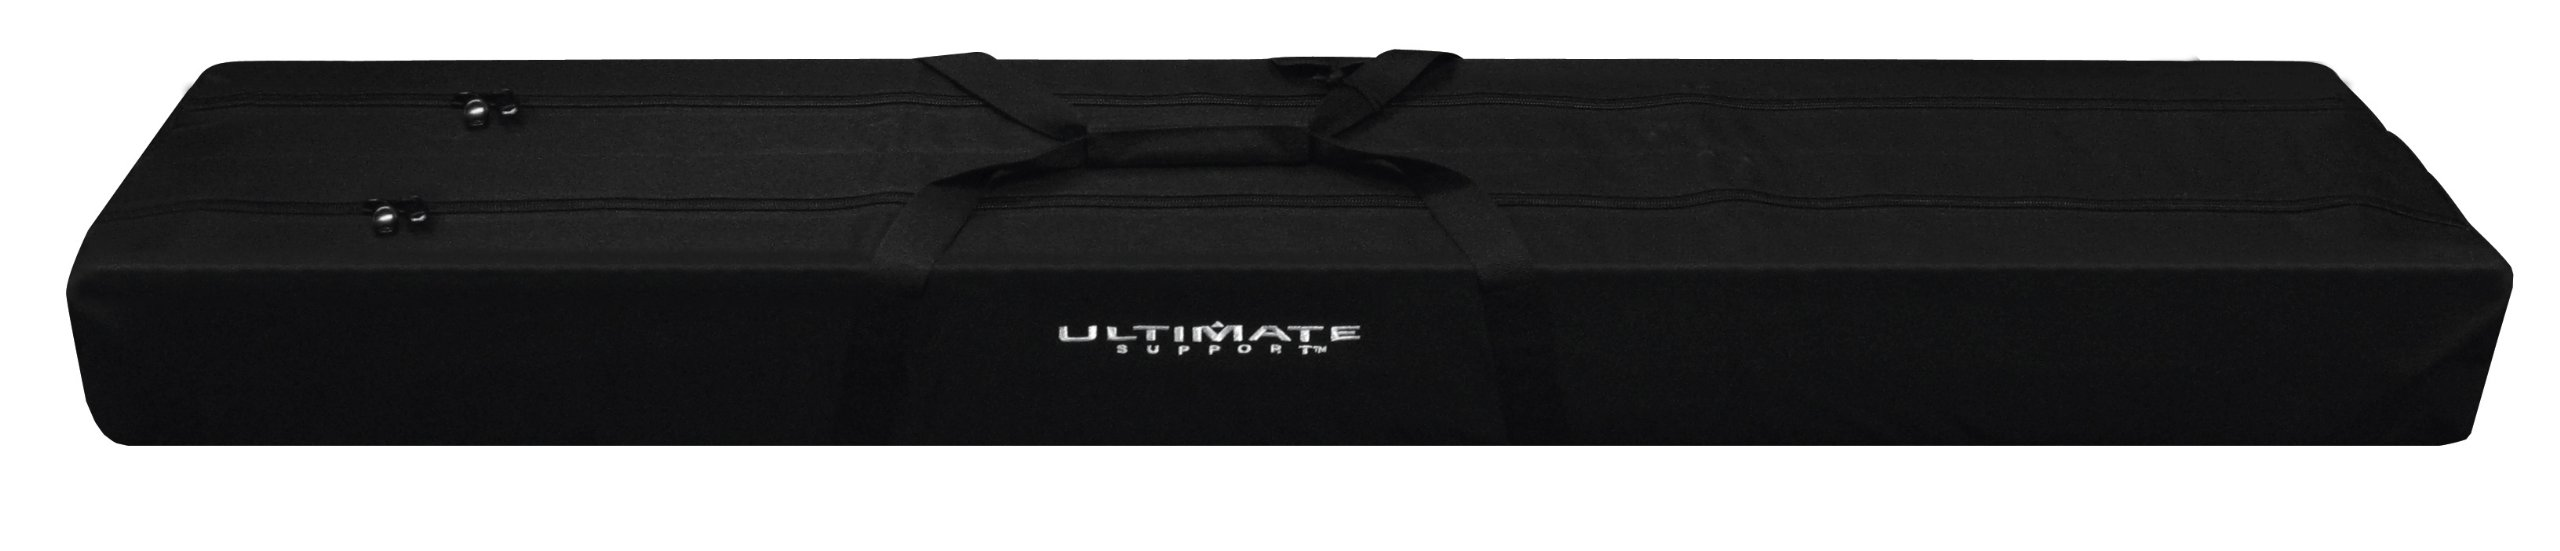 Ultimate Support Ultimate Tote for Two Extra Tall Speaker Stand (BAG99D) by Ultimate Support